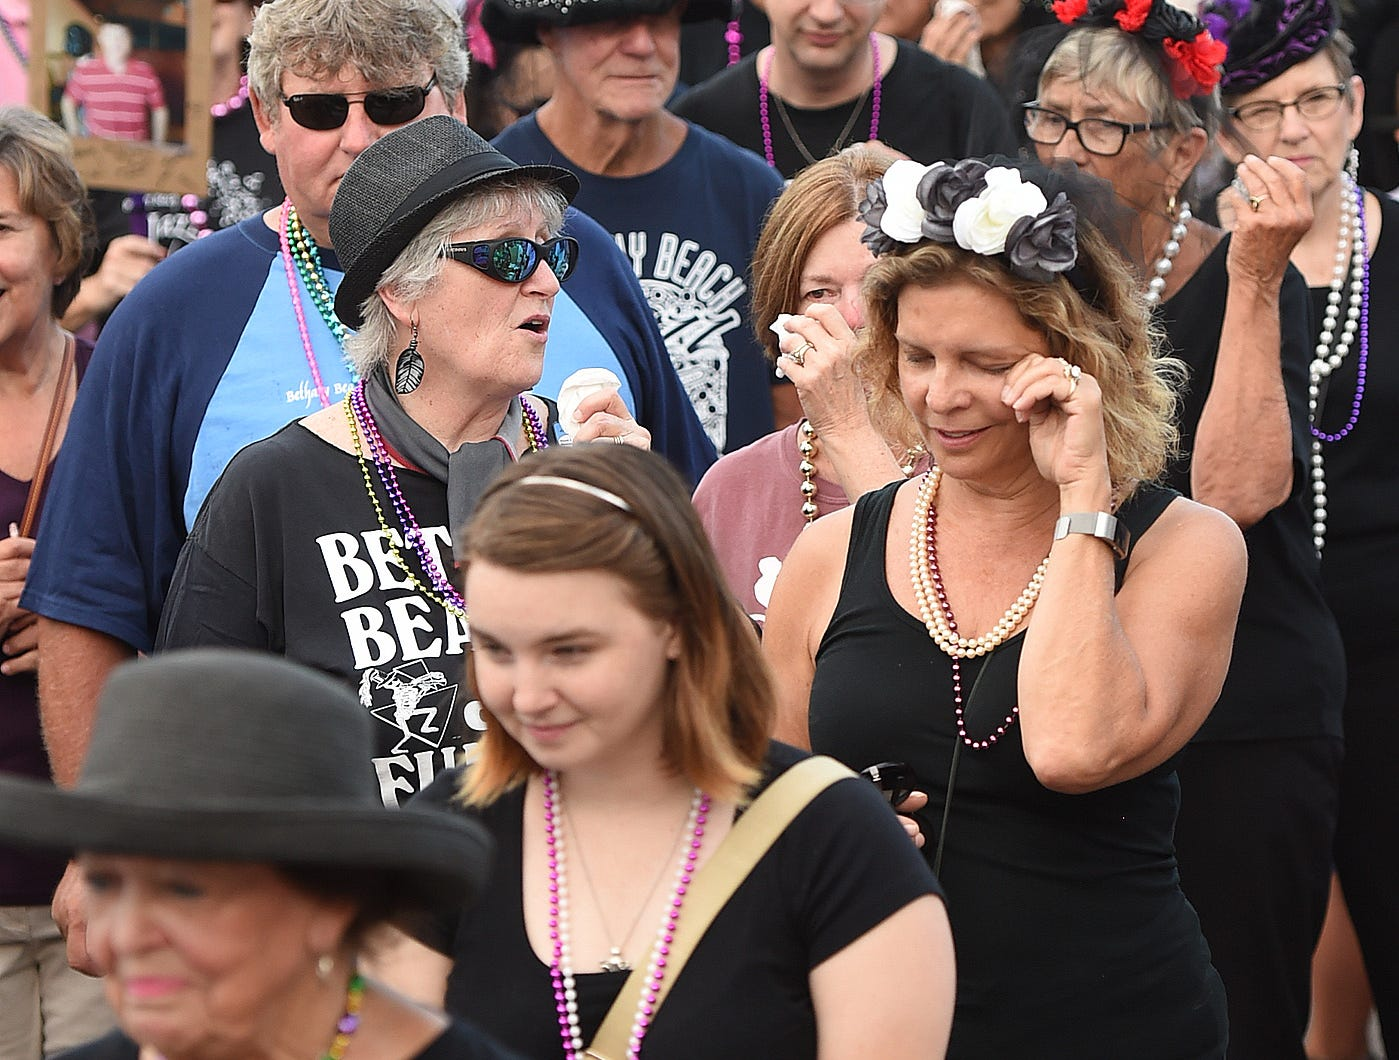 Summer 2018 ended as The 33rd Annual Jazz Funeral was held in Bethany Beach on Labor Day September 3rd with a march down the boardwalk to a Jazz Band and a casket signifying the end of the Season. A large crowd was on hand to see Sister Marie deliver the Eulogy and the thanking of the tourists who have visited the resort. She reminded everyone that the Shoulder Season is now in full bloom with business's still open and lots of great weather still to come.